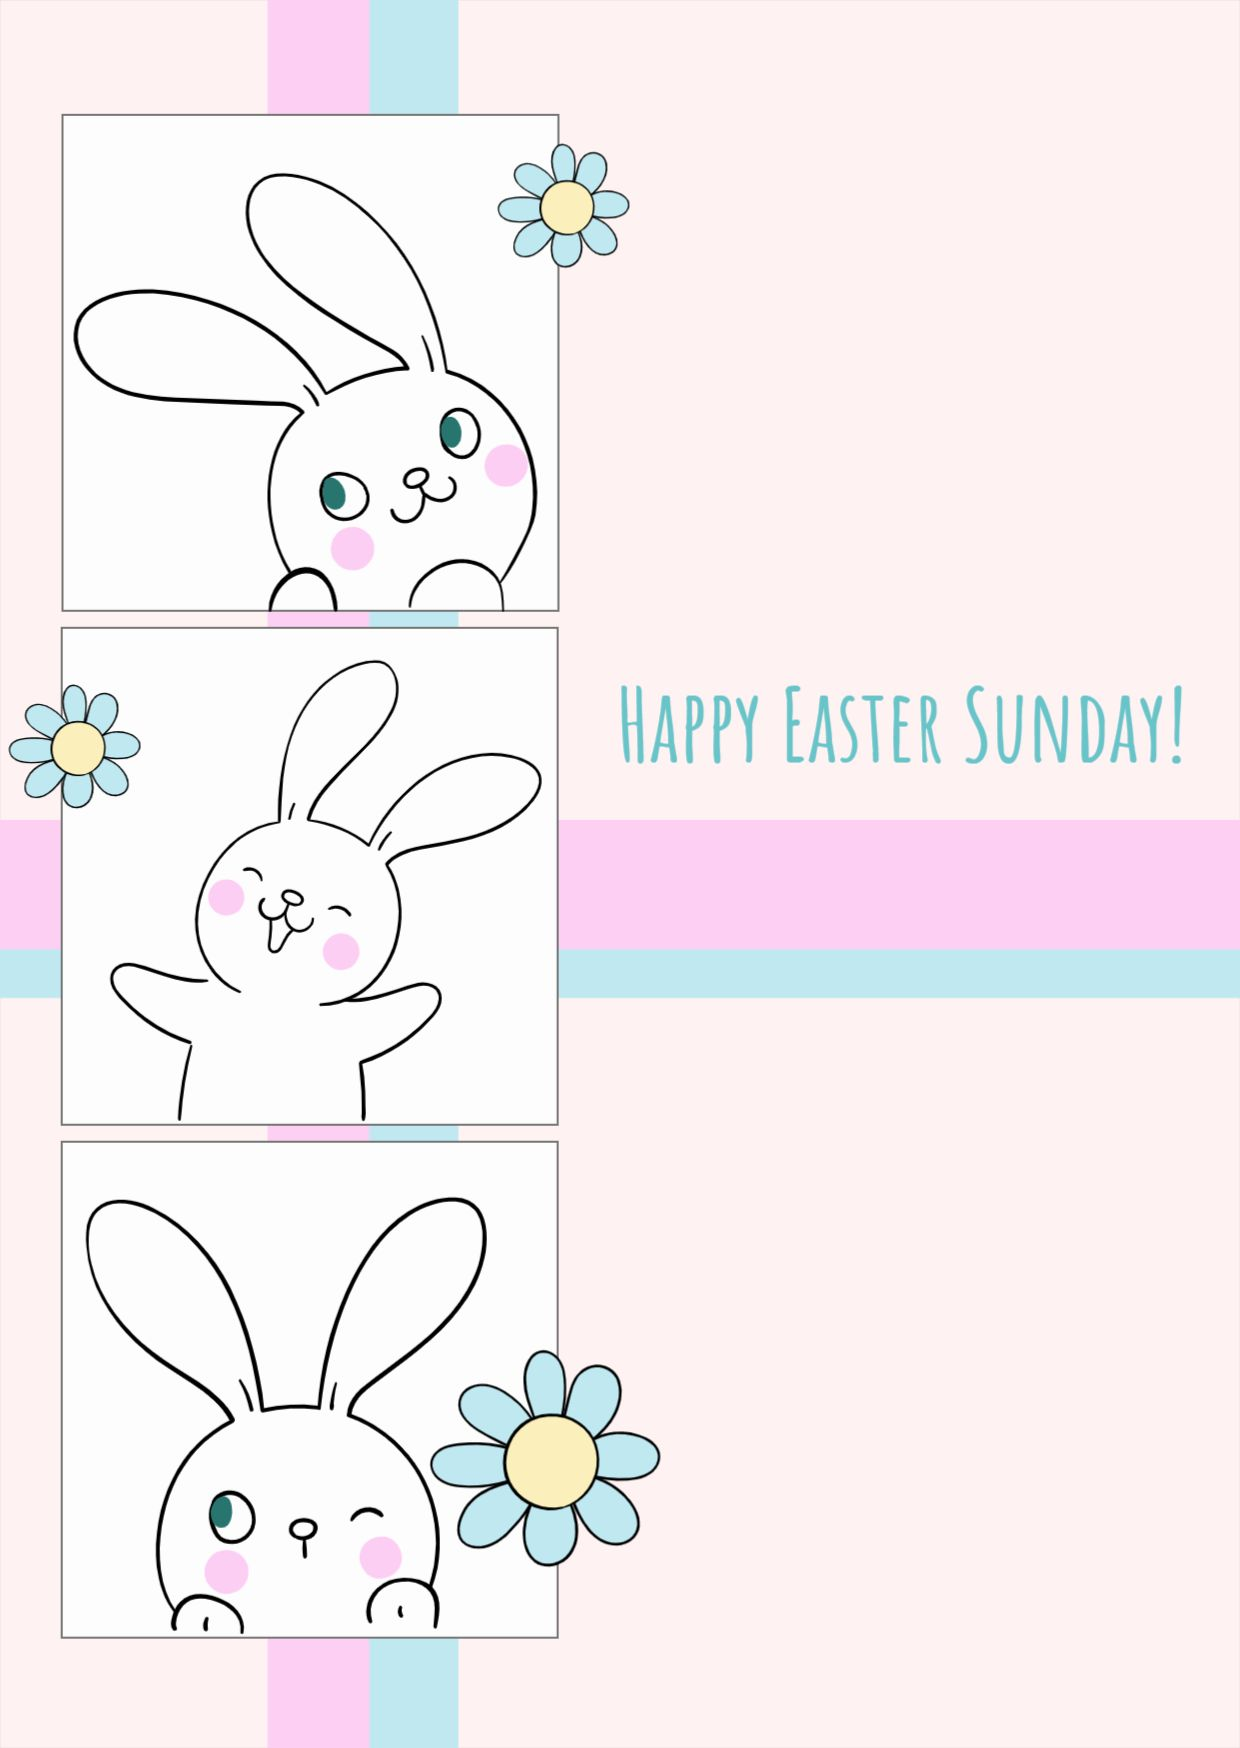 Happy Easter Sunday Template